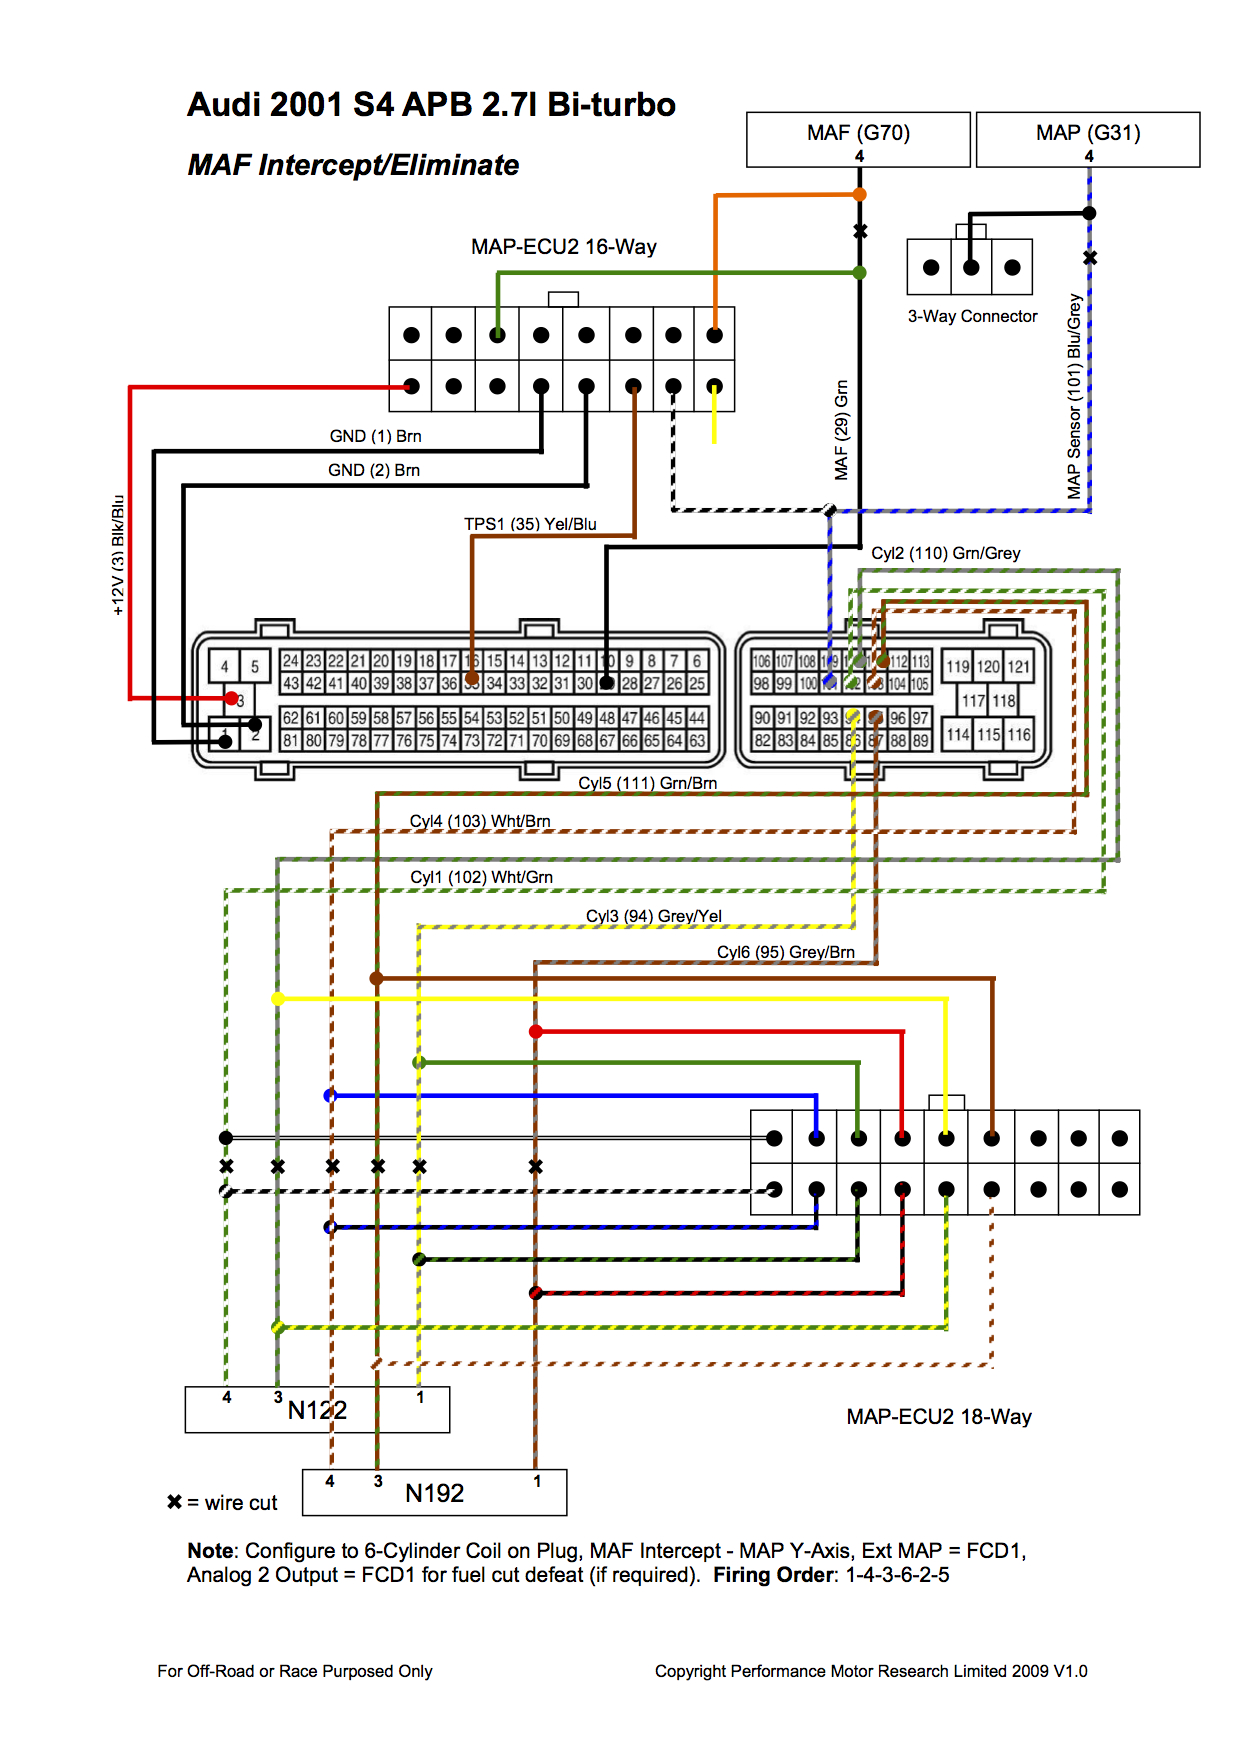 Audi S4 20011 ecu wiring diagram paccar ecu wiring diagram \u2022 wiring diagrams j  at honlapkeszites.co